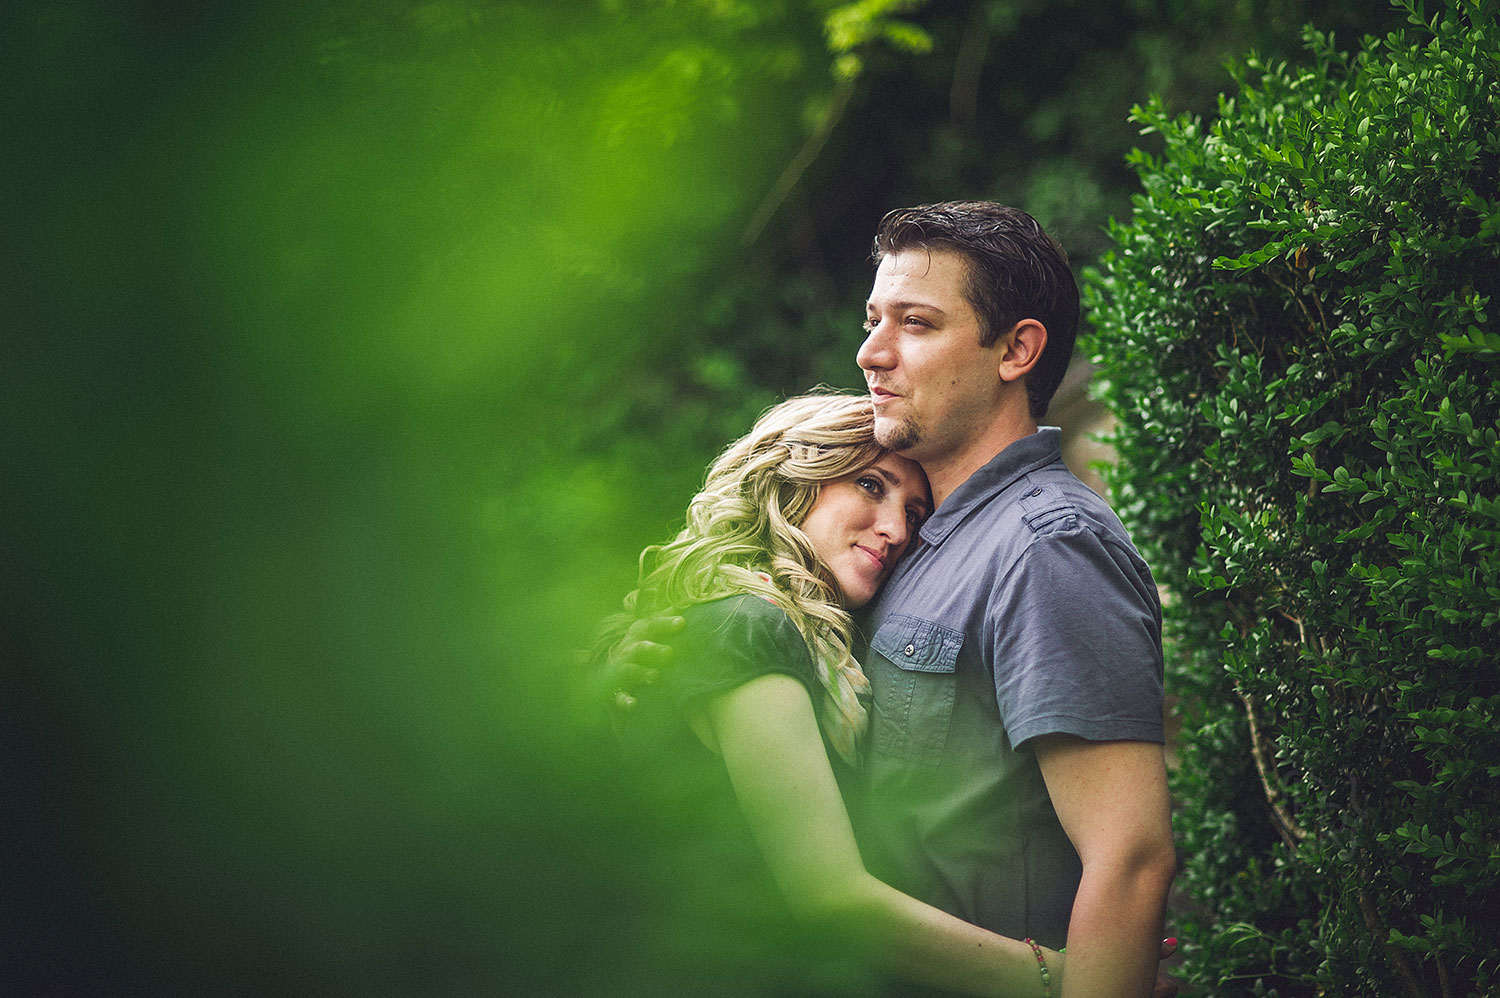 ridley-creek-state-park-engagment-session-16.jpg